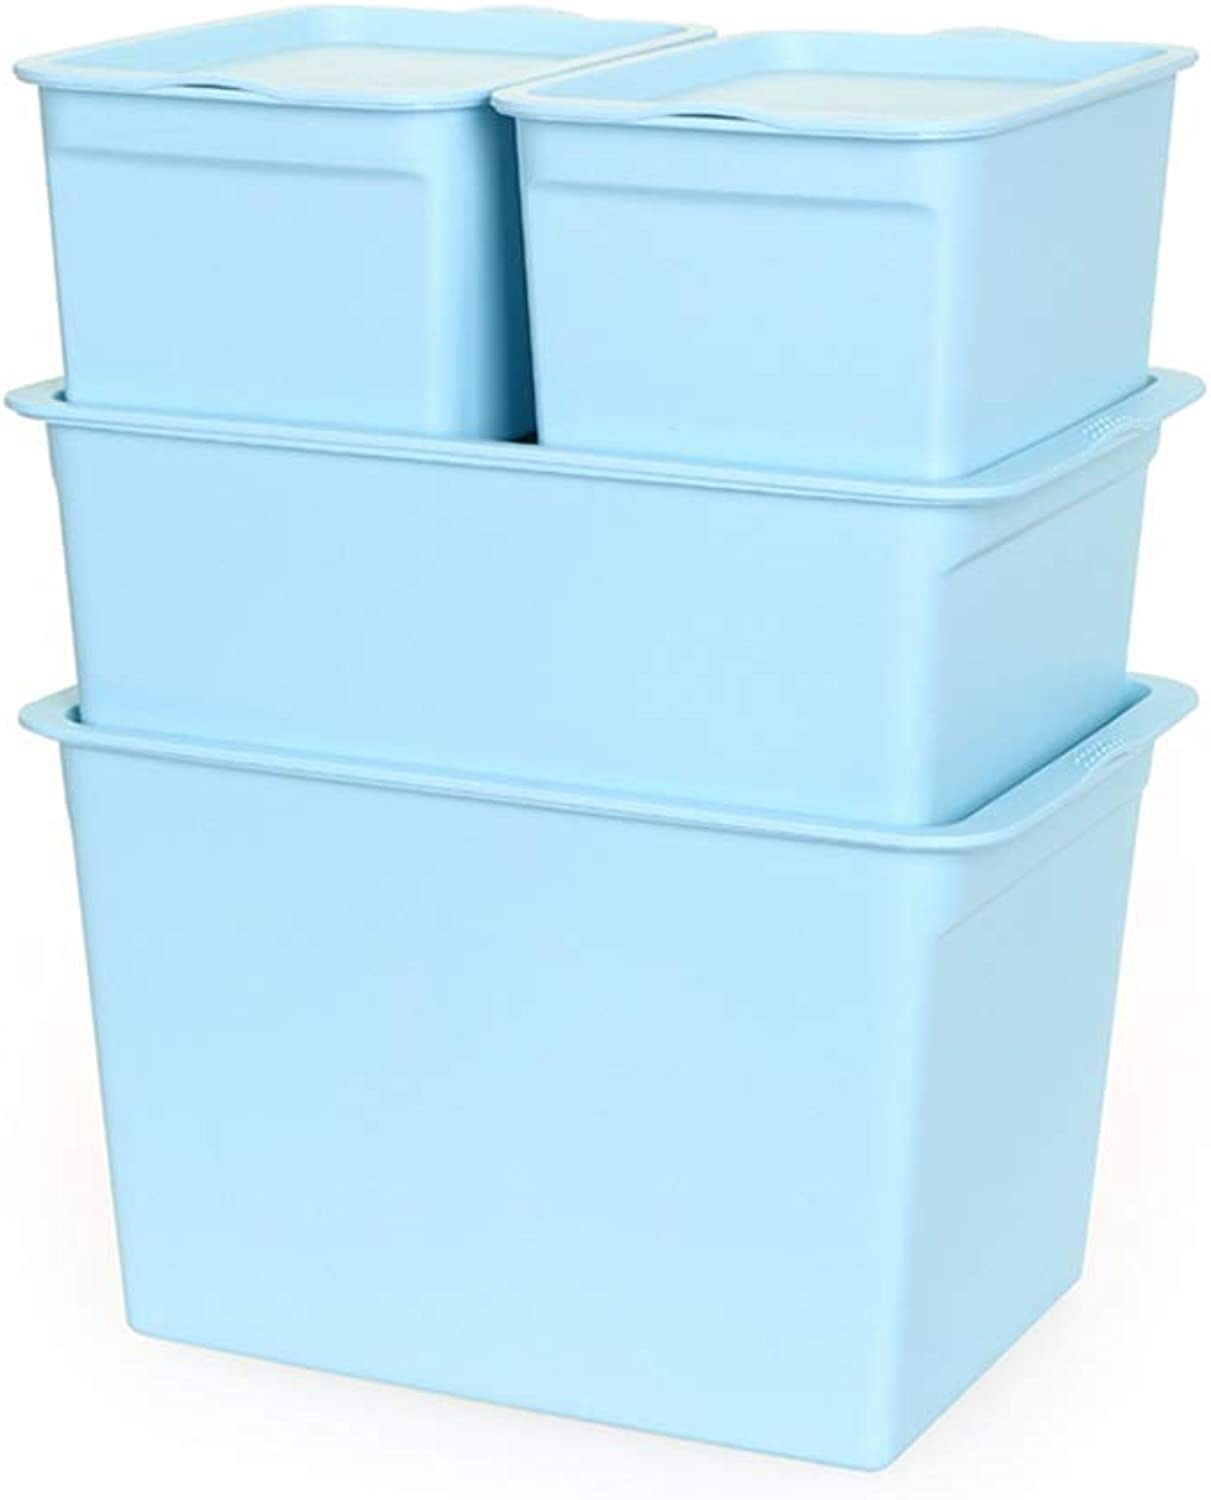 ZHANGQIANG Storage Basket Laundry Basket Litre Clear Plastic Storage Boxes & Lids - Pack of 3 (color   Rattan bluee, Size   Four-Piece Set)